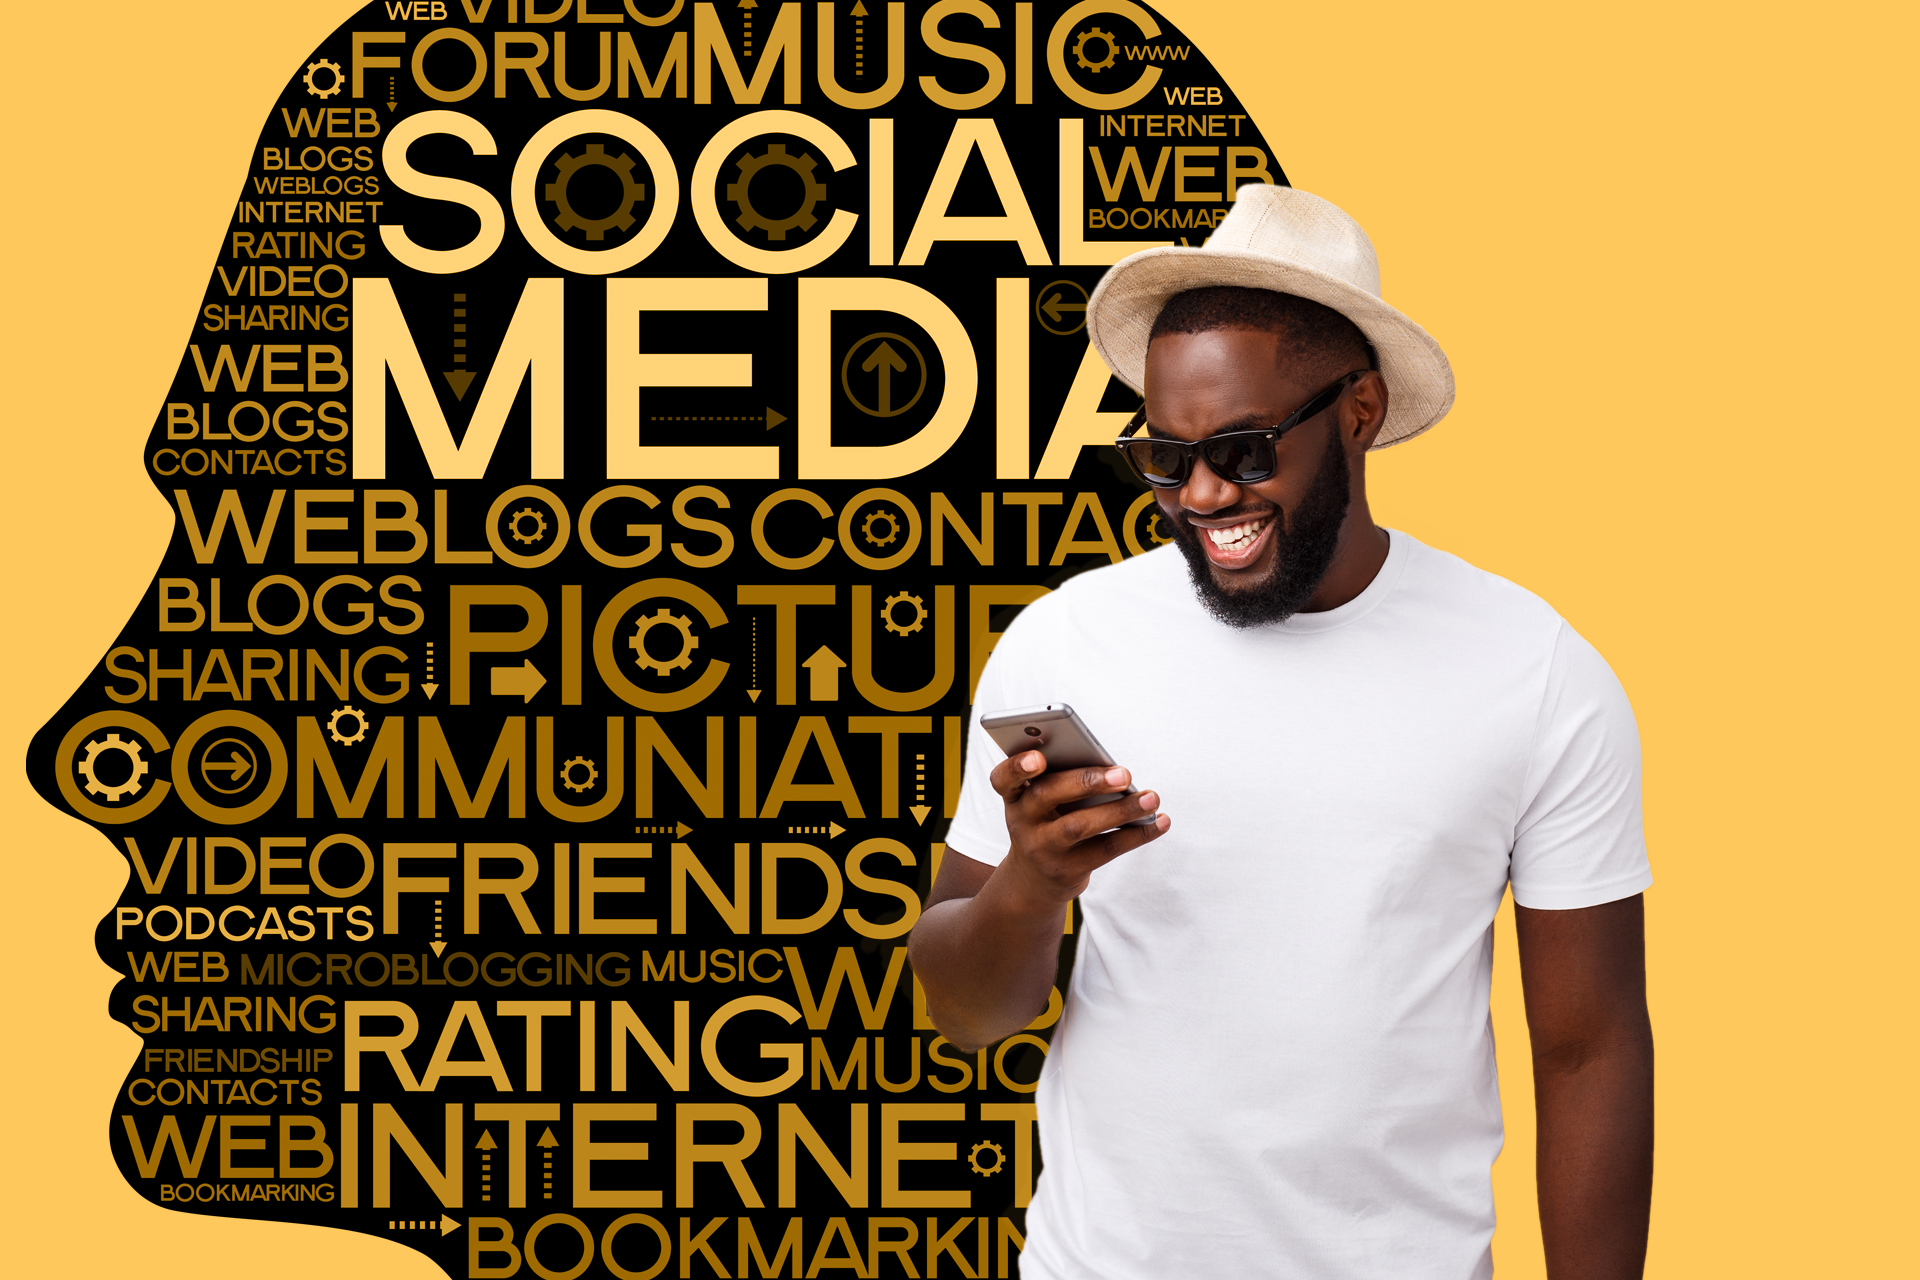 how important is social media to your brand?